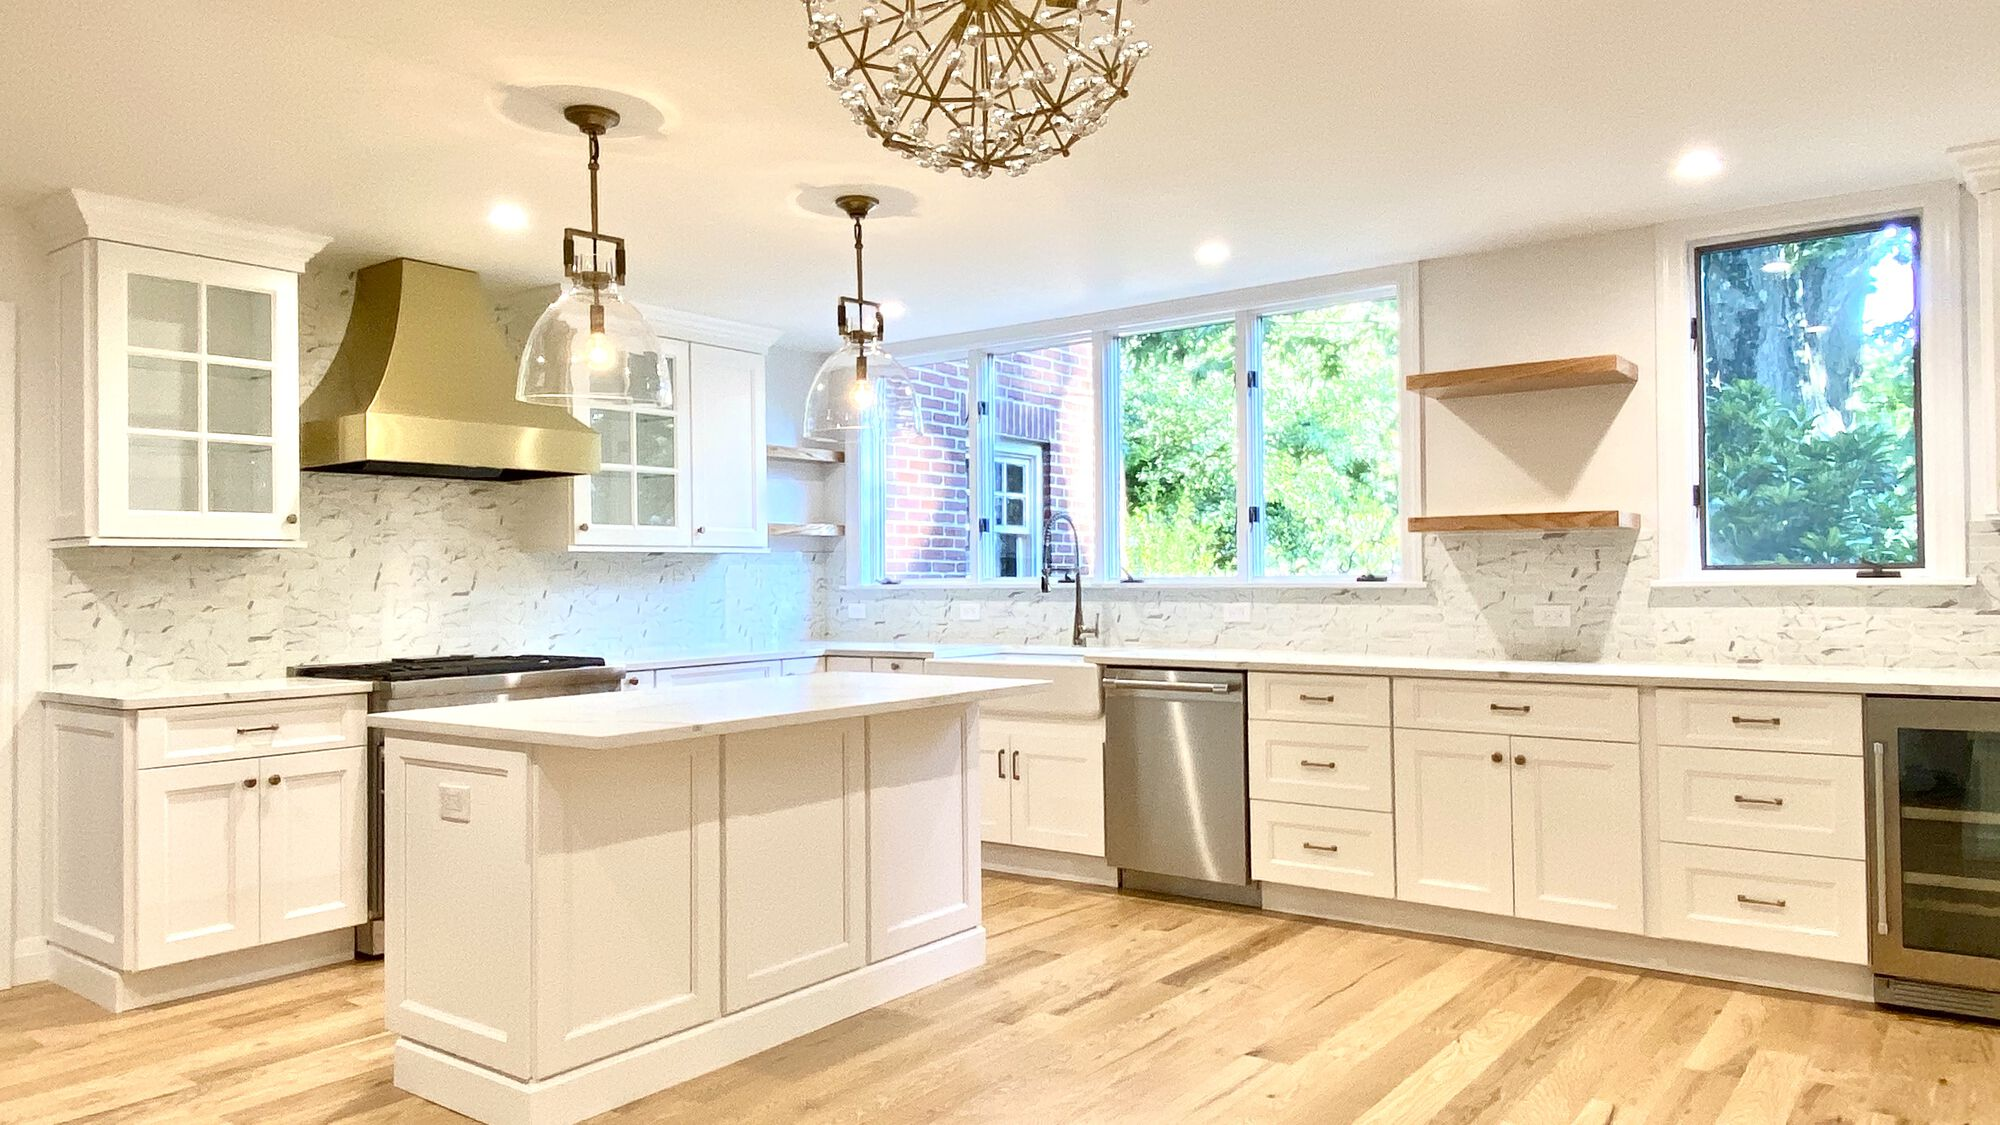 Fully Gutted Kitchen Reno with Updated Plumbing _ Electric, Oak Flooring, Insulation _ Drywall, Paint _ Trim, Wood Cabinets, Custom Banquet in West Orange, Essex County NJ